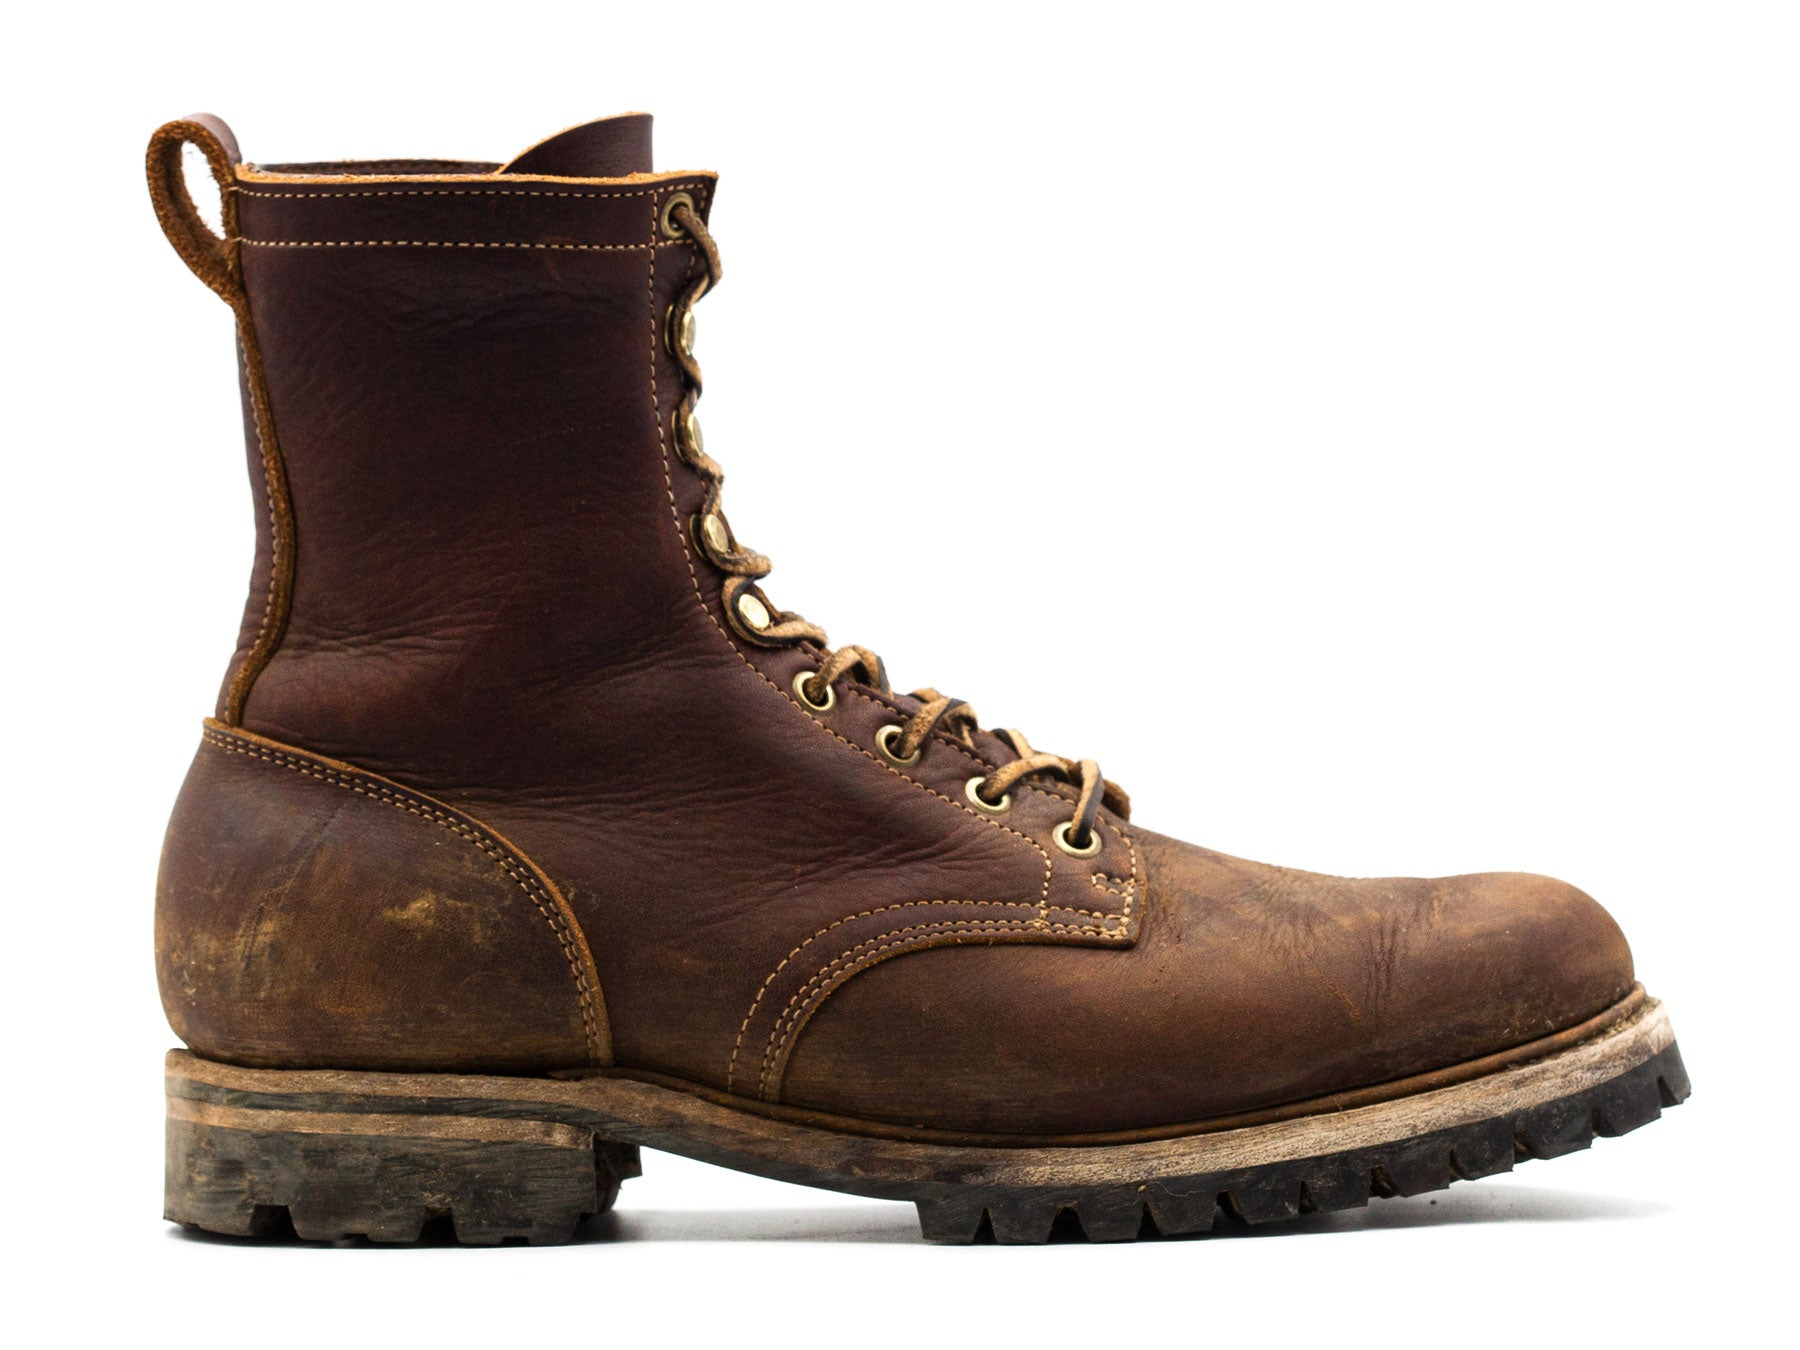 Cattail Grizzly Upland boot used and in worn condition